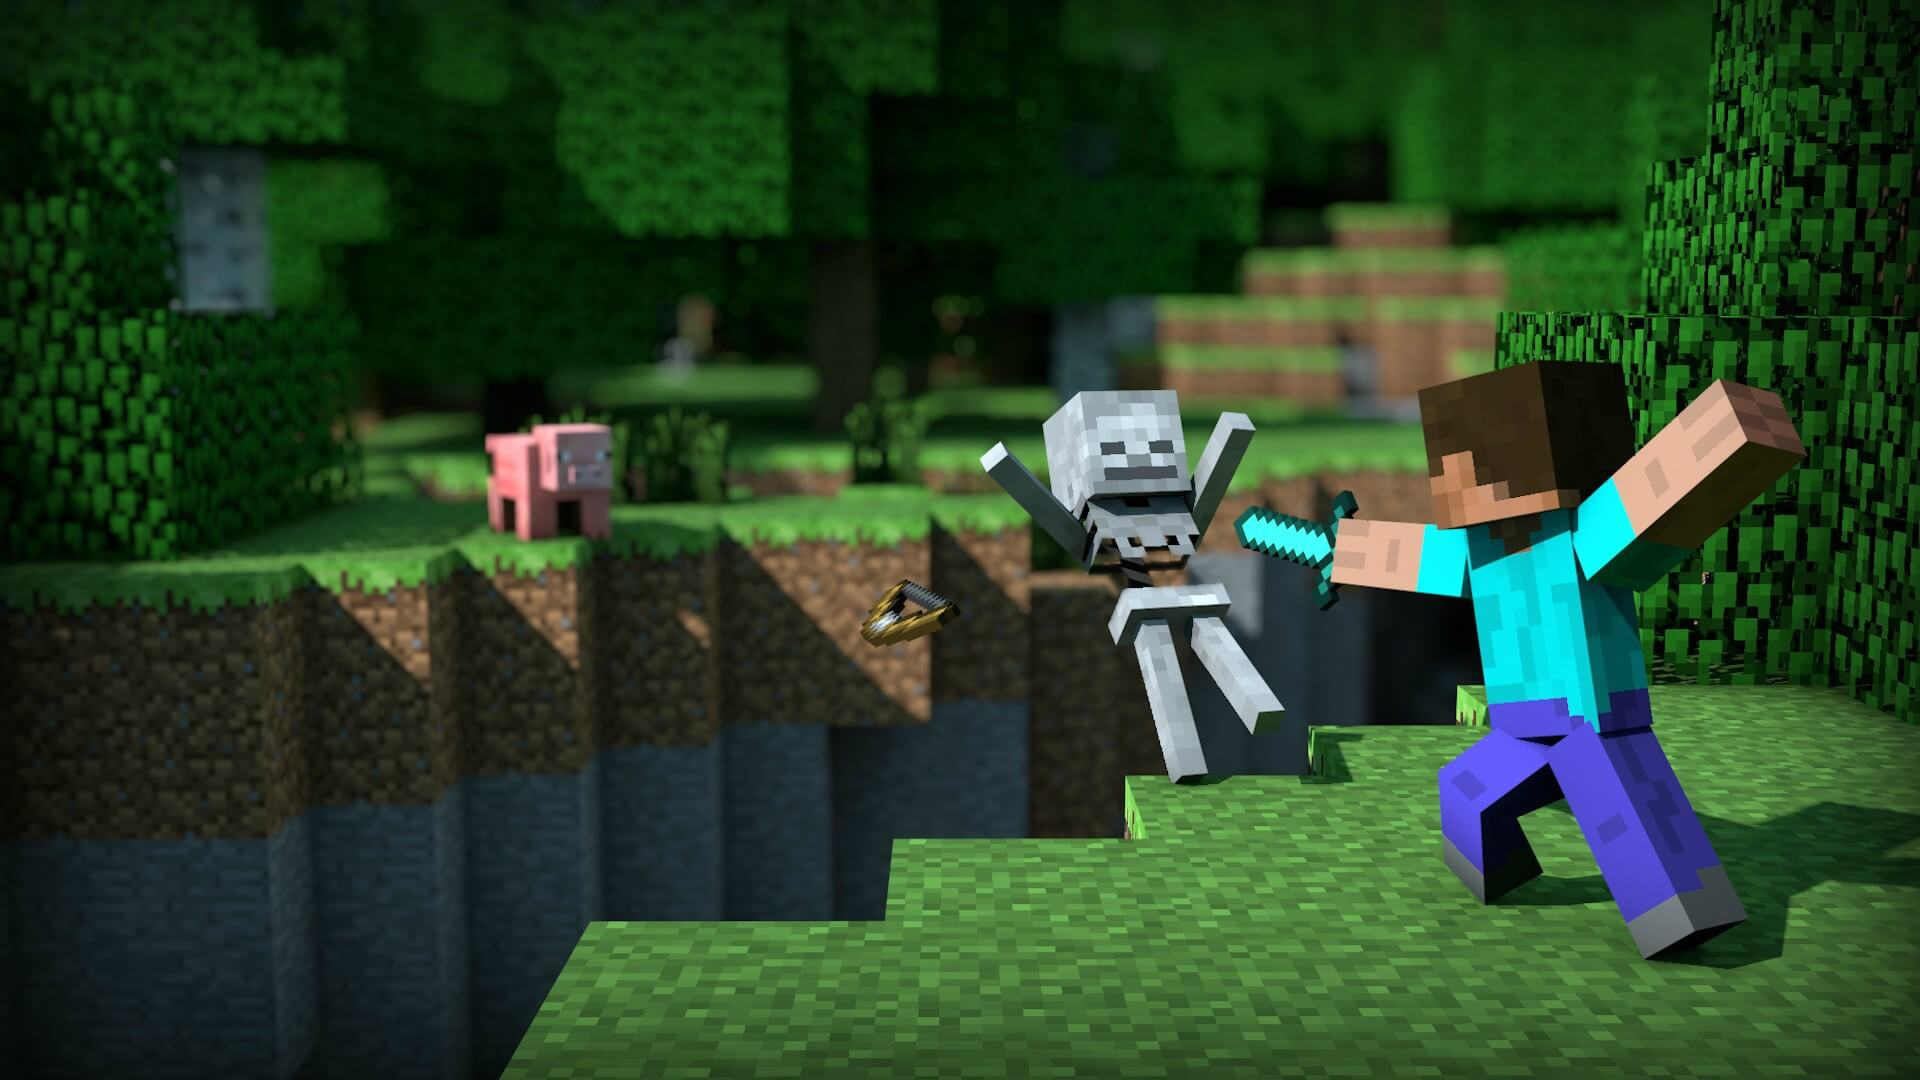 Wallpaper La Revanche - The-Minecraft.fr